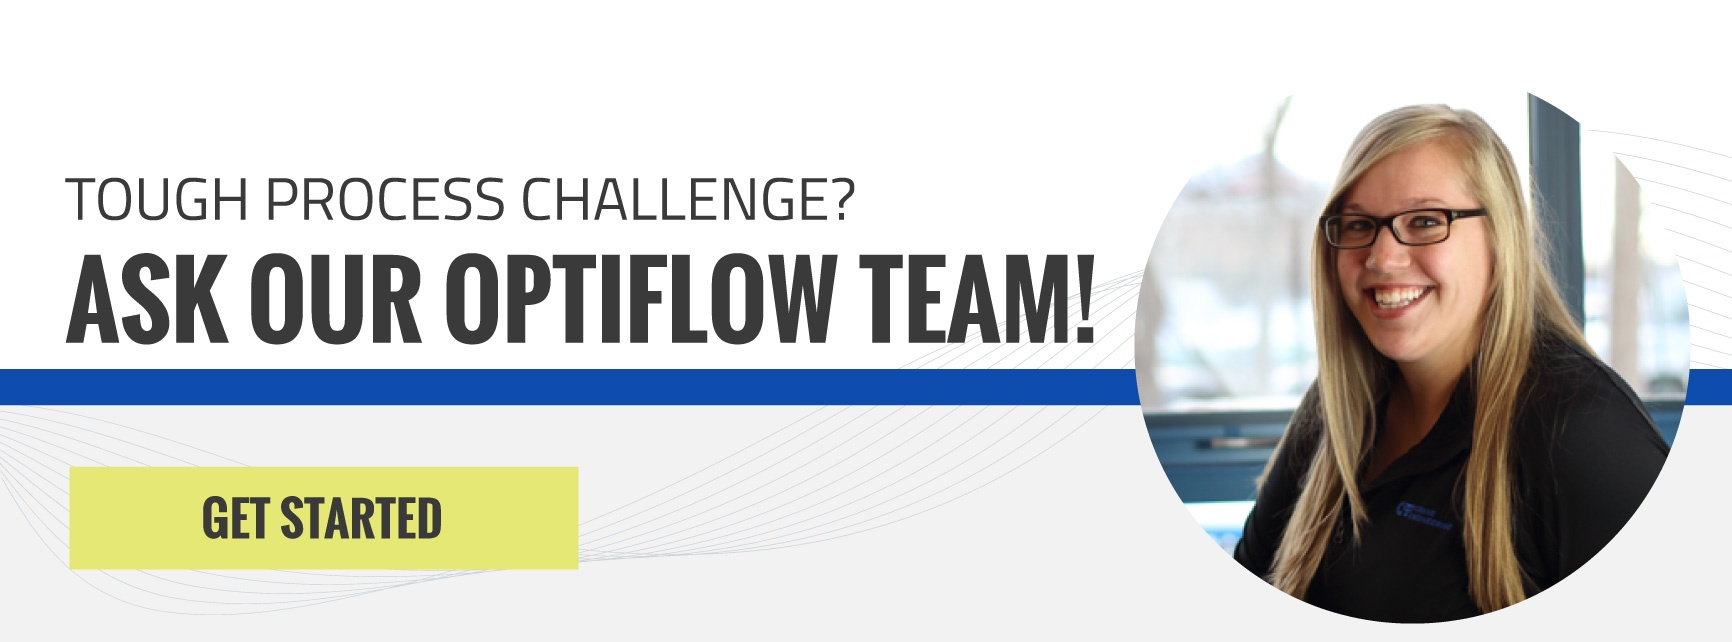 Tough Process Challenge? Ask Our OptiFlow Team - Get Started